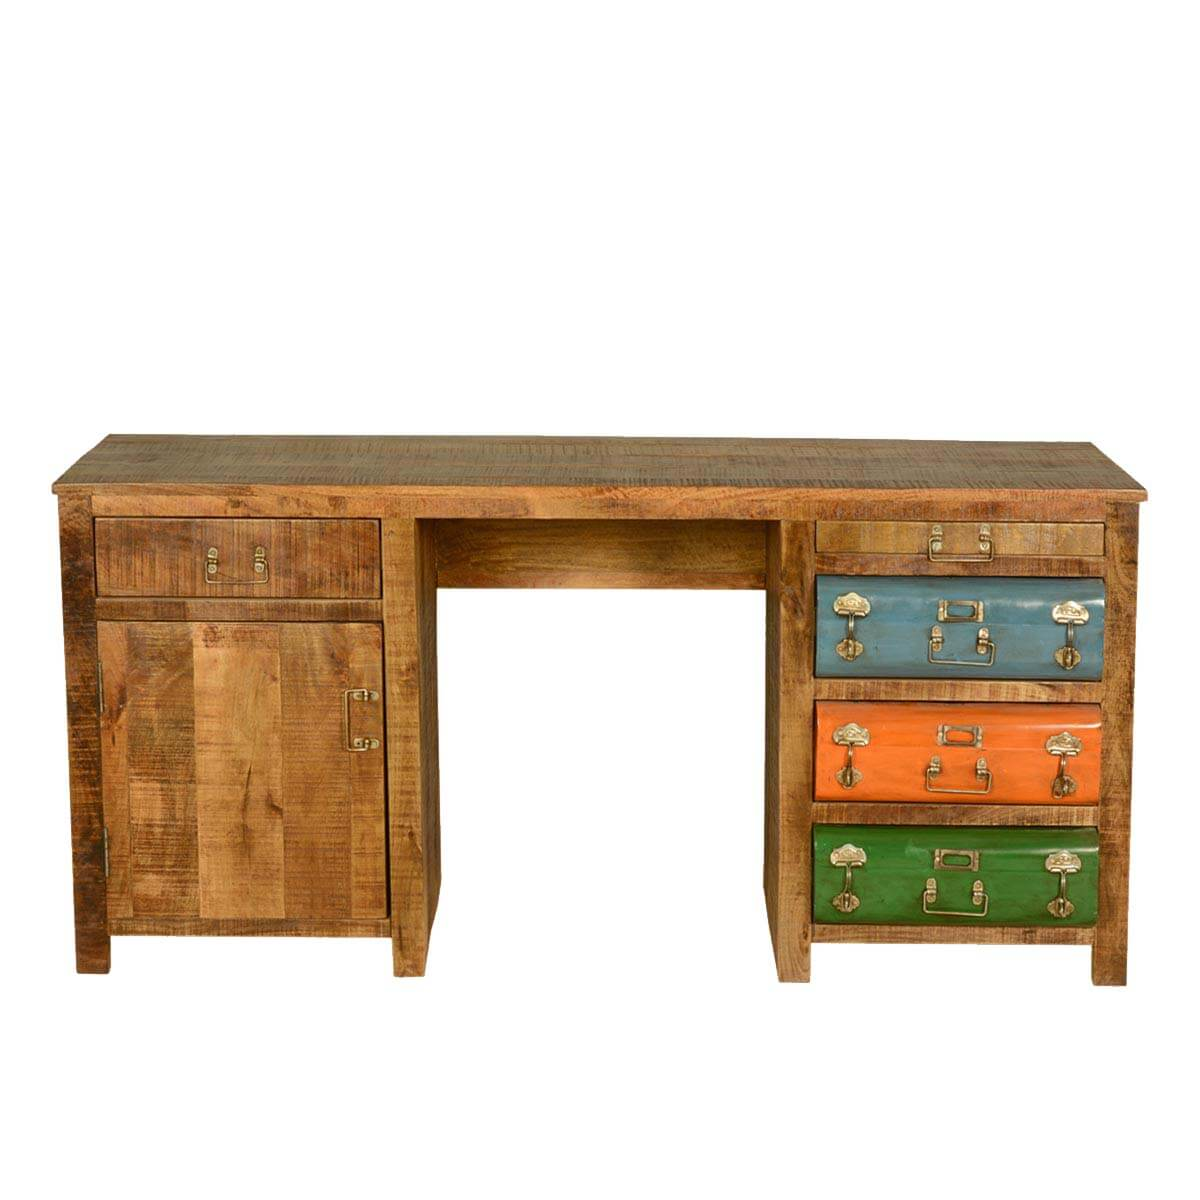 Steam Punk Solid Wood Colorful Office Desk